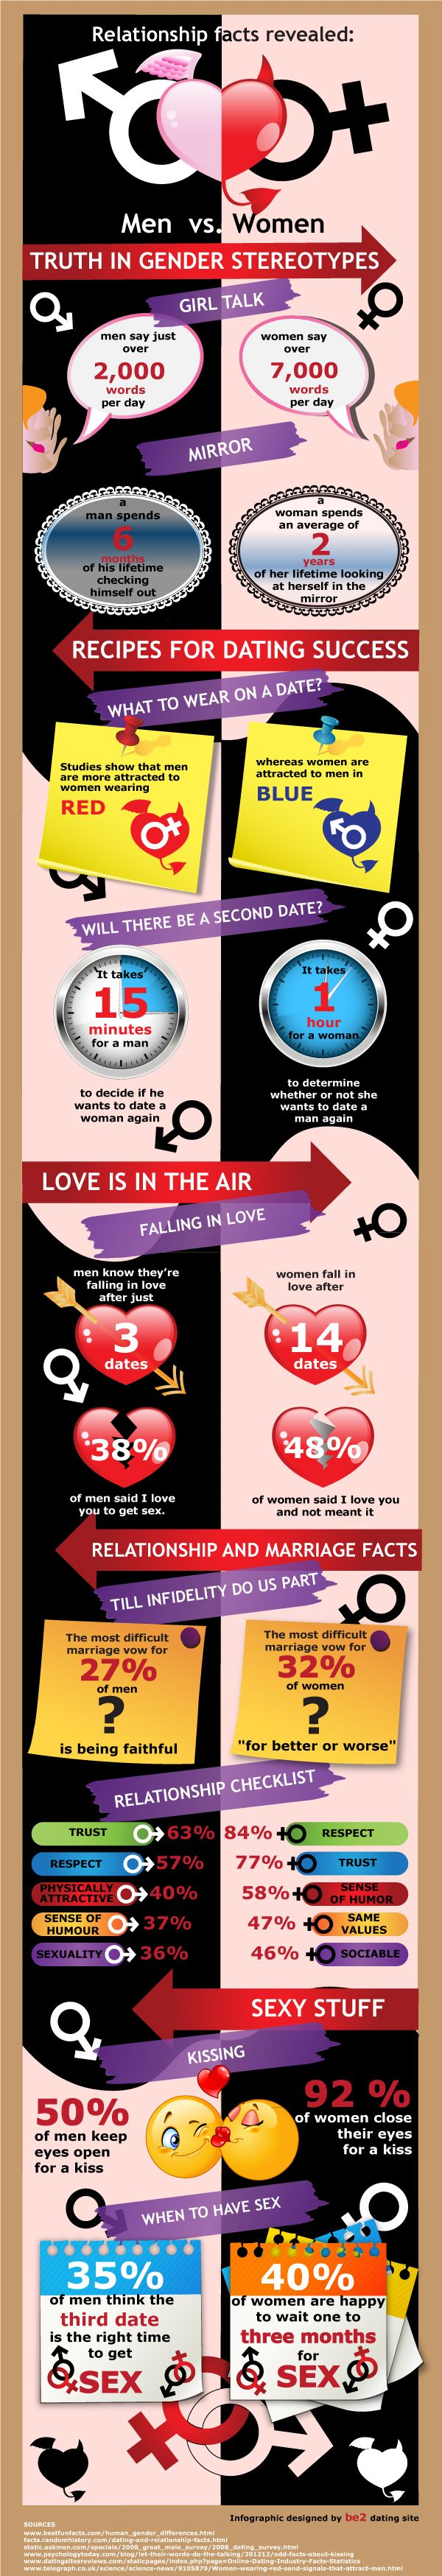 relationship facts about men and women